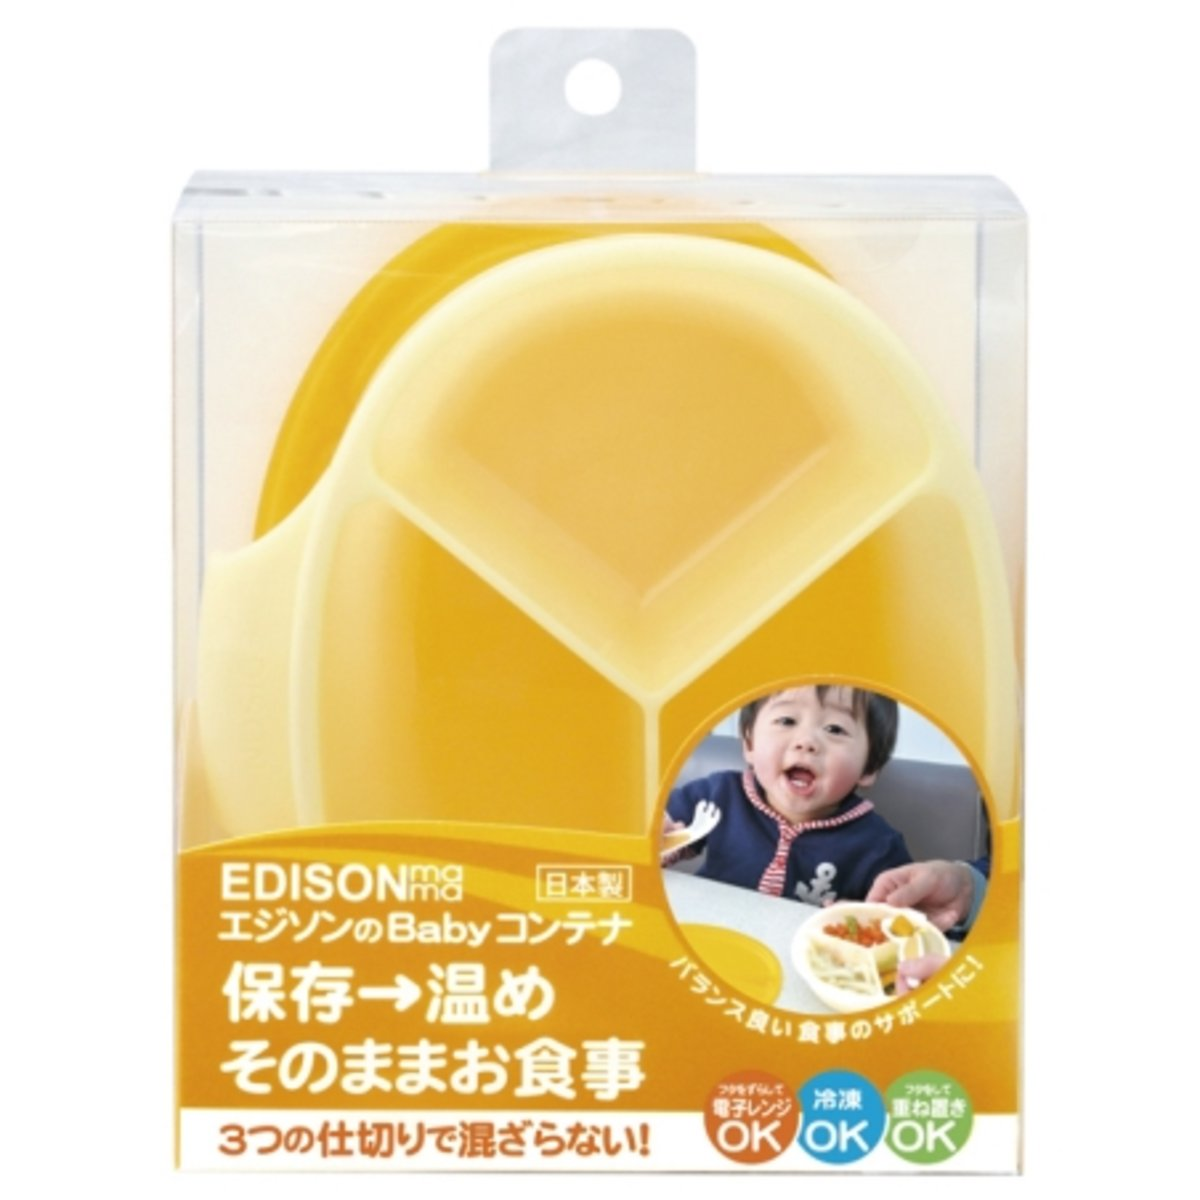 BABY PLASTIC CONTAINER (YELLOW)